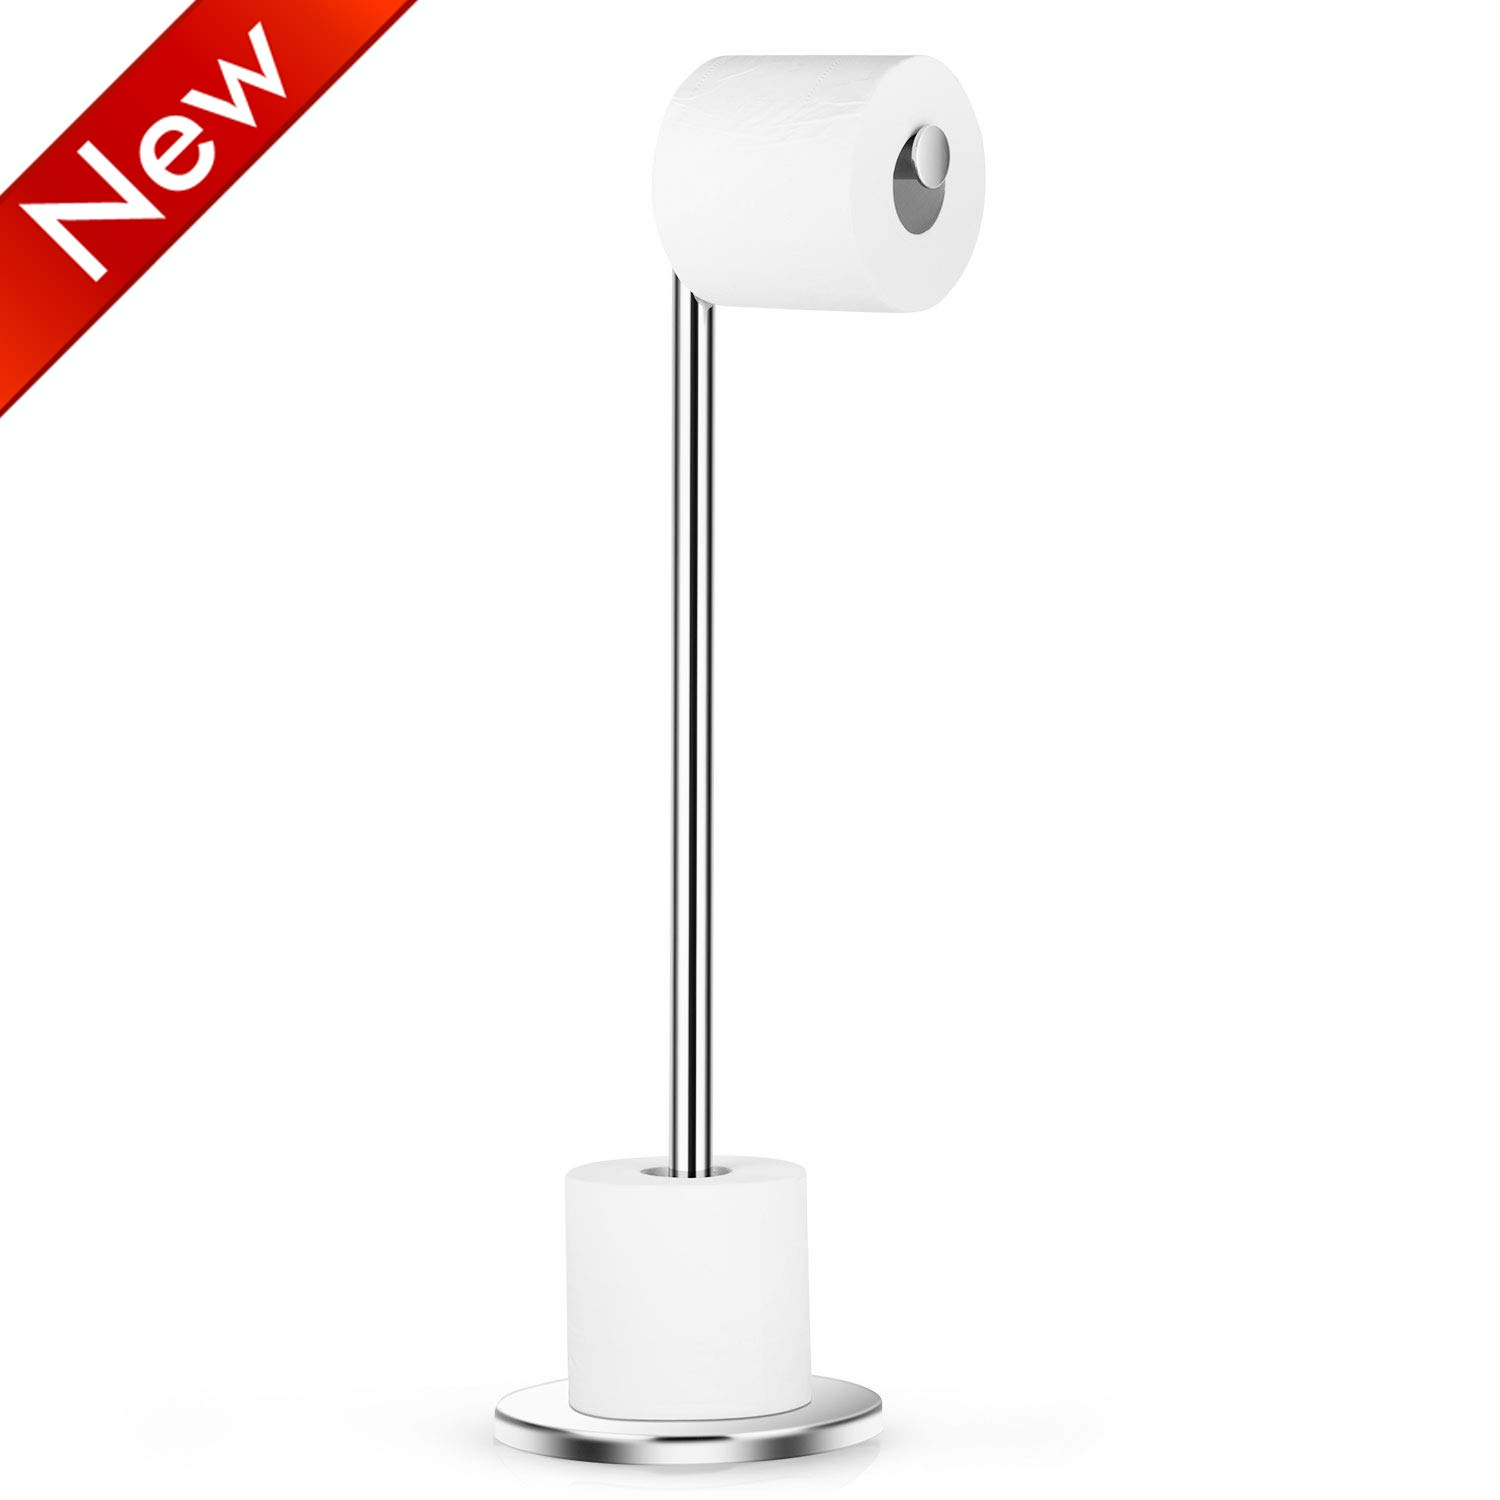 Naturous Stainless Steel Toilet Paper Holder, Free Standing Lavatory Pedestal Toilet Paper Stand with Reserve